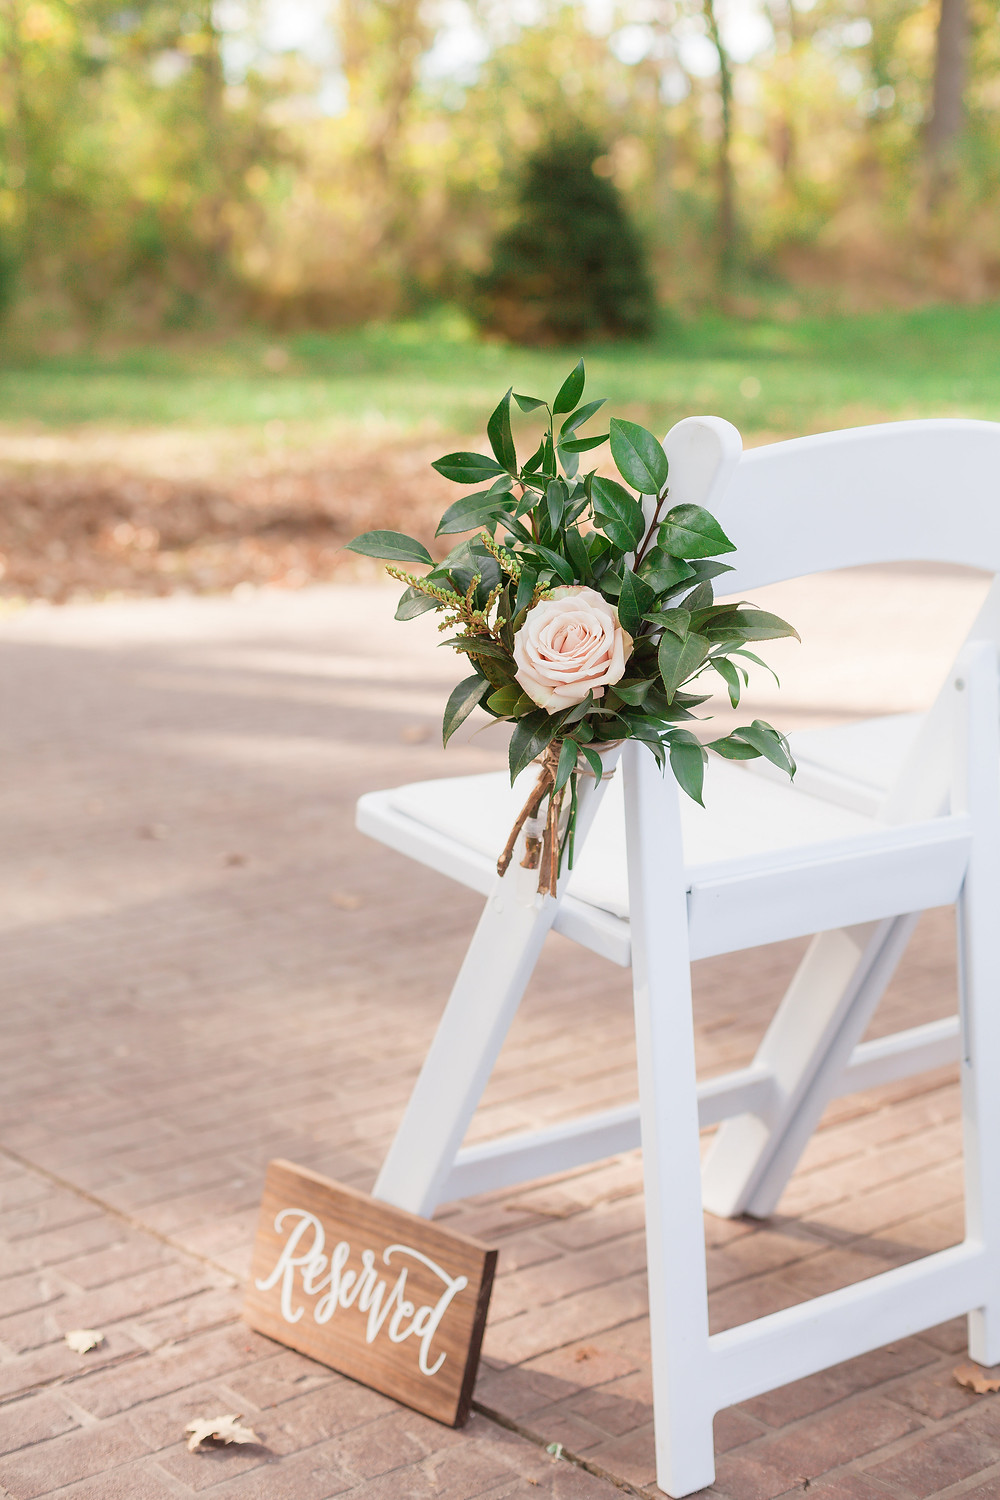 Rose aisle marker with greenery on white chair for outdoor wedding by studio bloom iowa wedding florist at rapid creek cidery